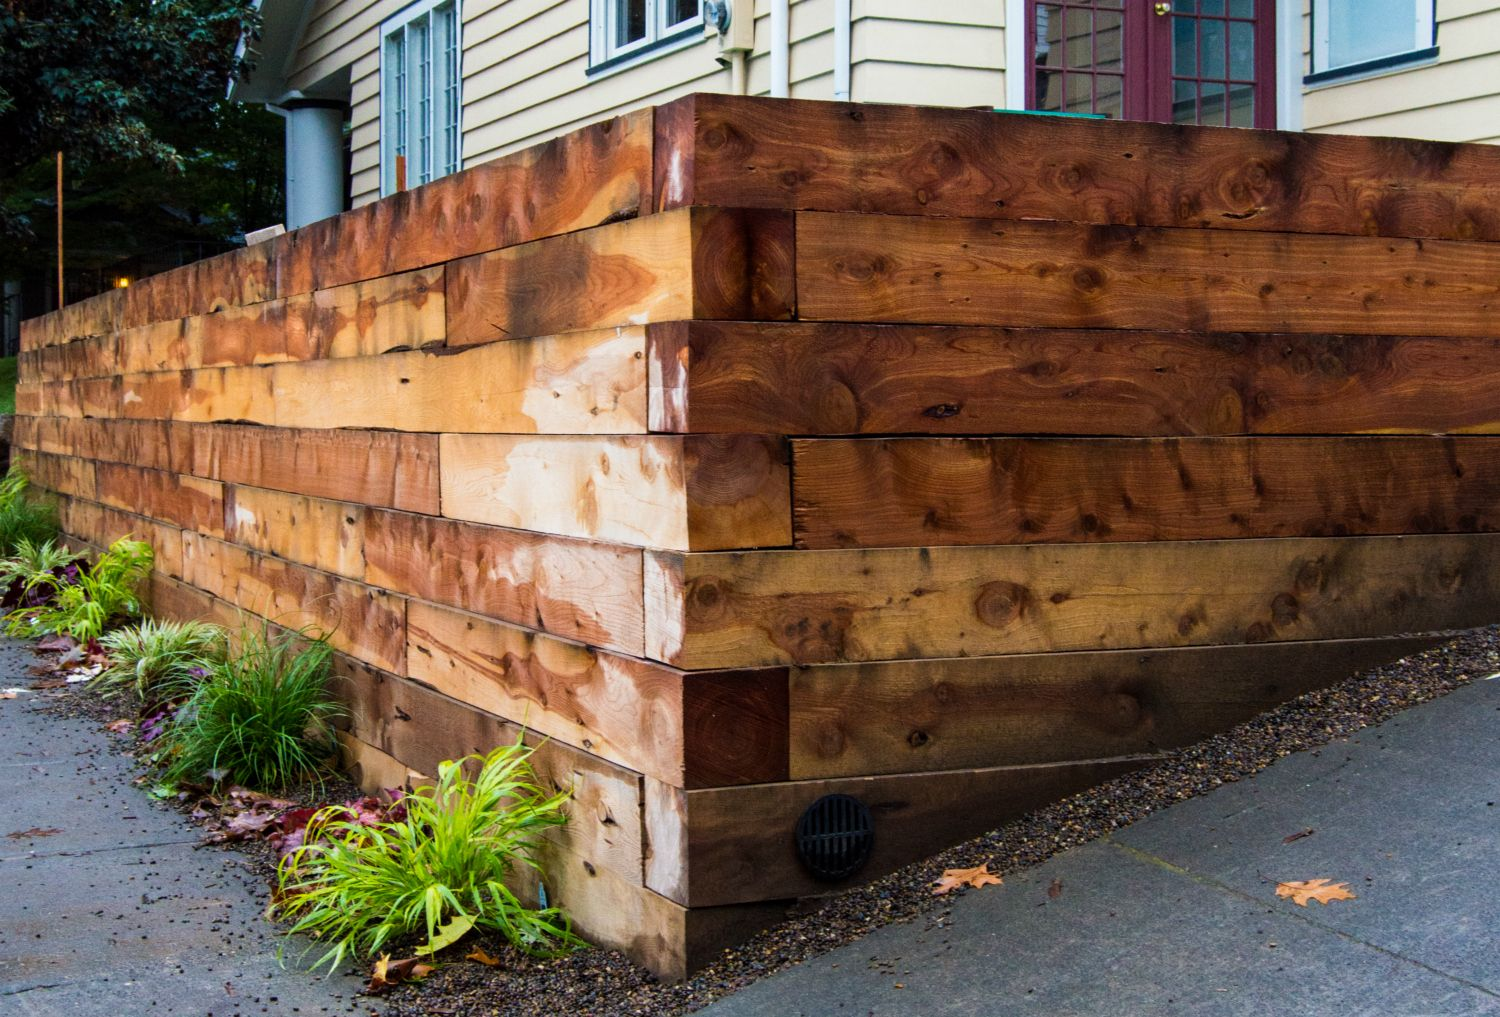 Landscape Timbers Portland Or : Hefty juniper landscaping timbers were used for this beautiful